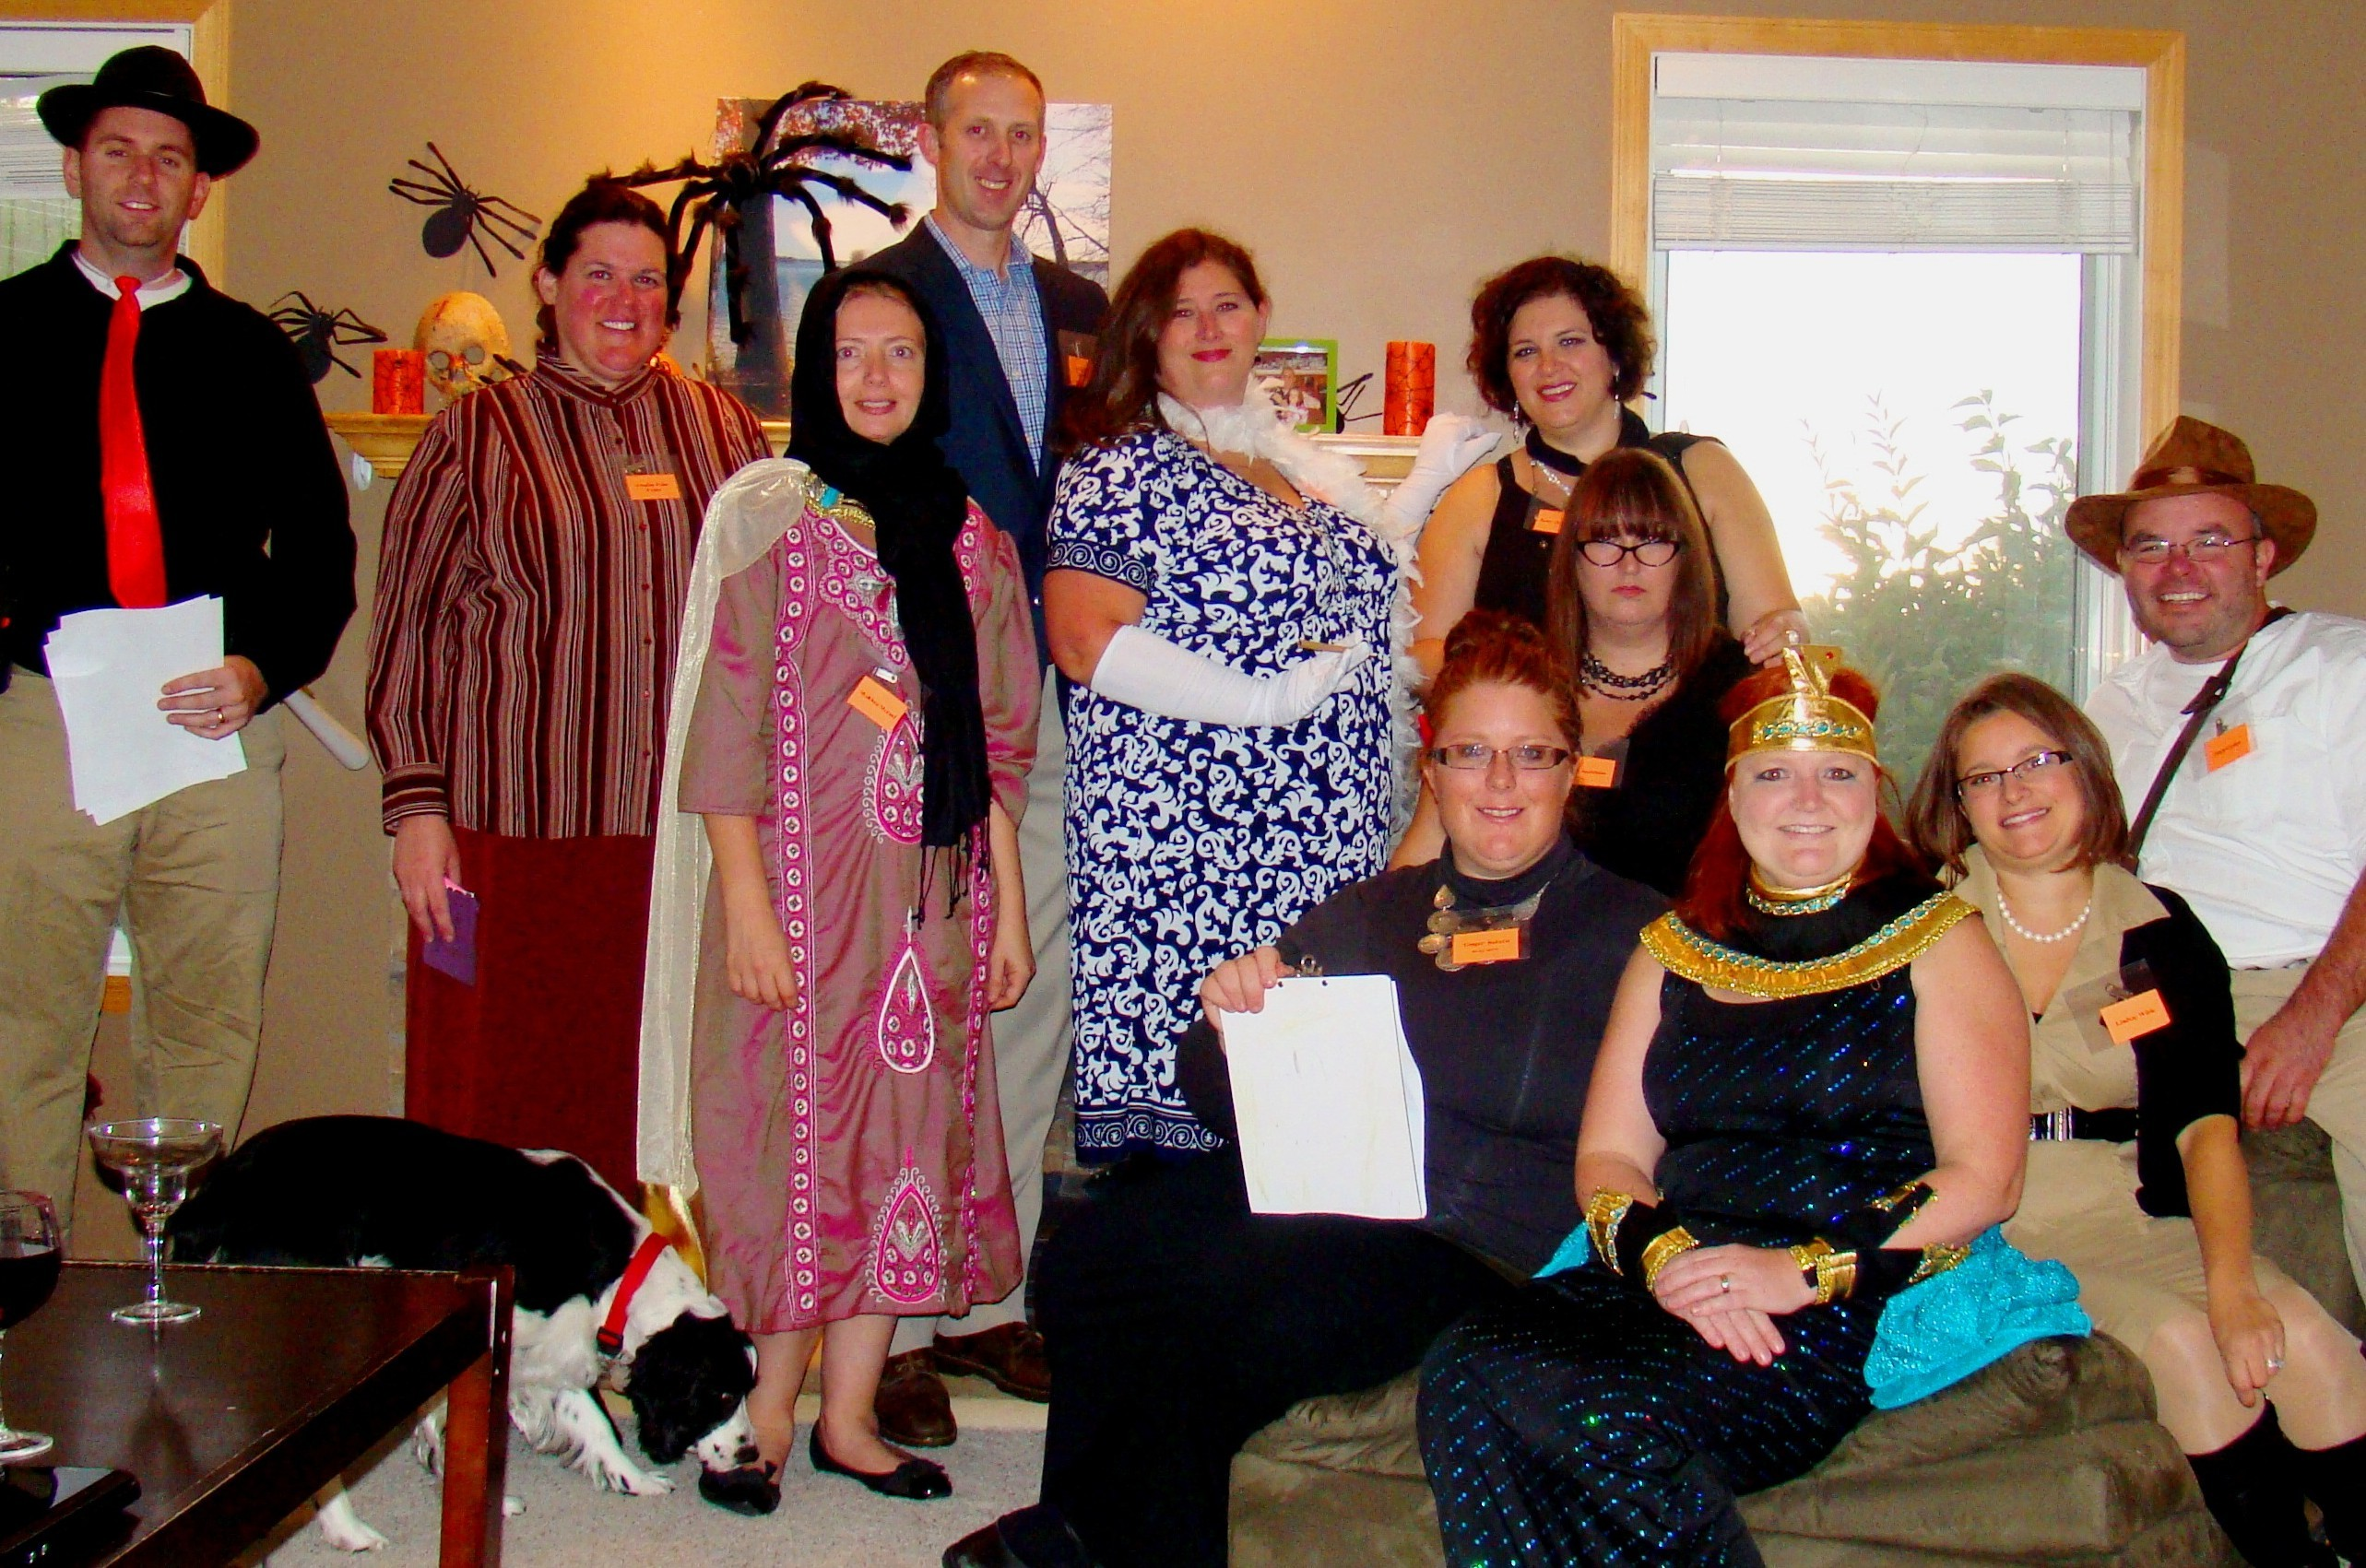 Curse of the Pharaoh – group photo - Angela Frankosky